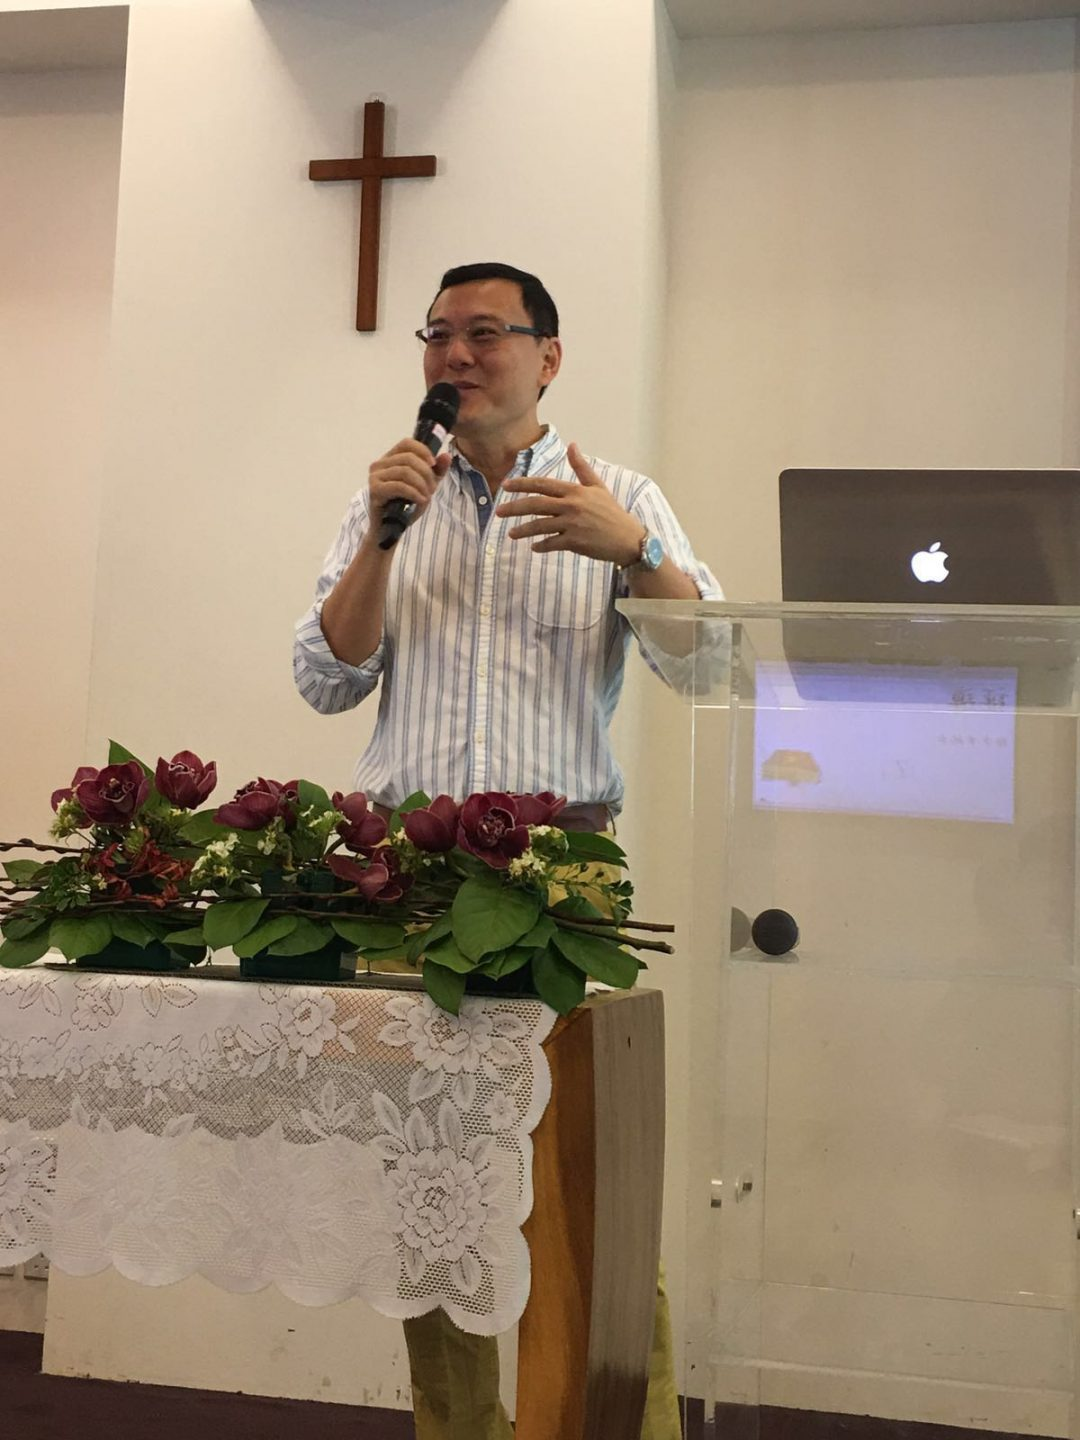 After Tay mustered up the courage to share his testimony at the pulpit, he realised that many others, too, were struggling with the same issues. Photo courtesy of Andrew Tay.